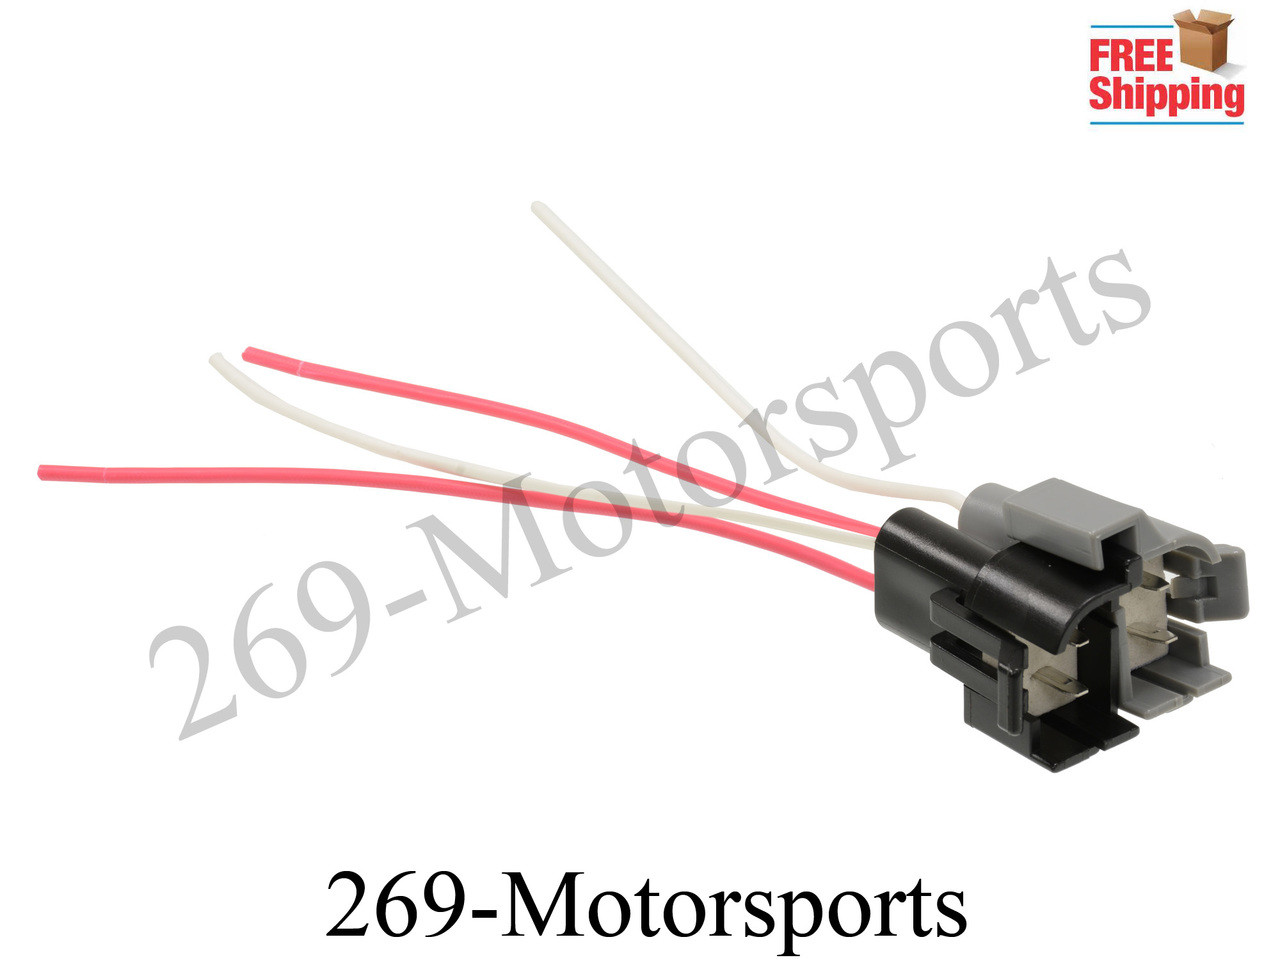 16400 02.main__40168.1497027451?c=2&imbypass=on coil wire harness tpi tbi fits lt1 gm camaro firebird connector